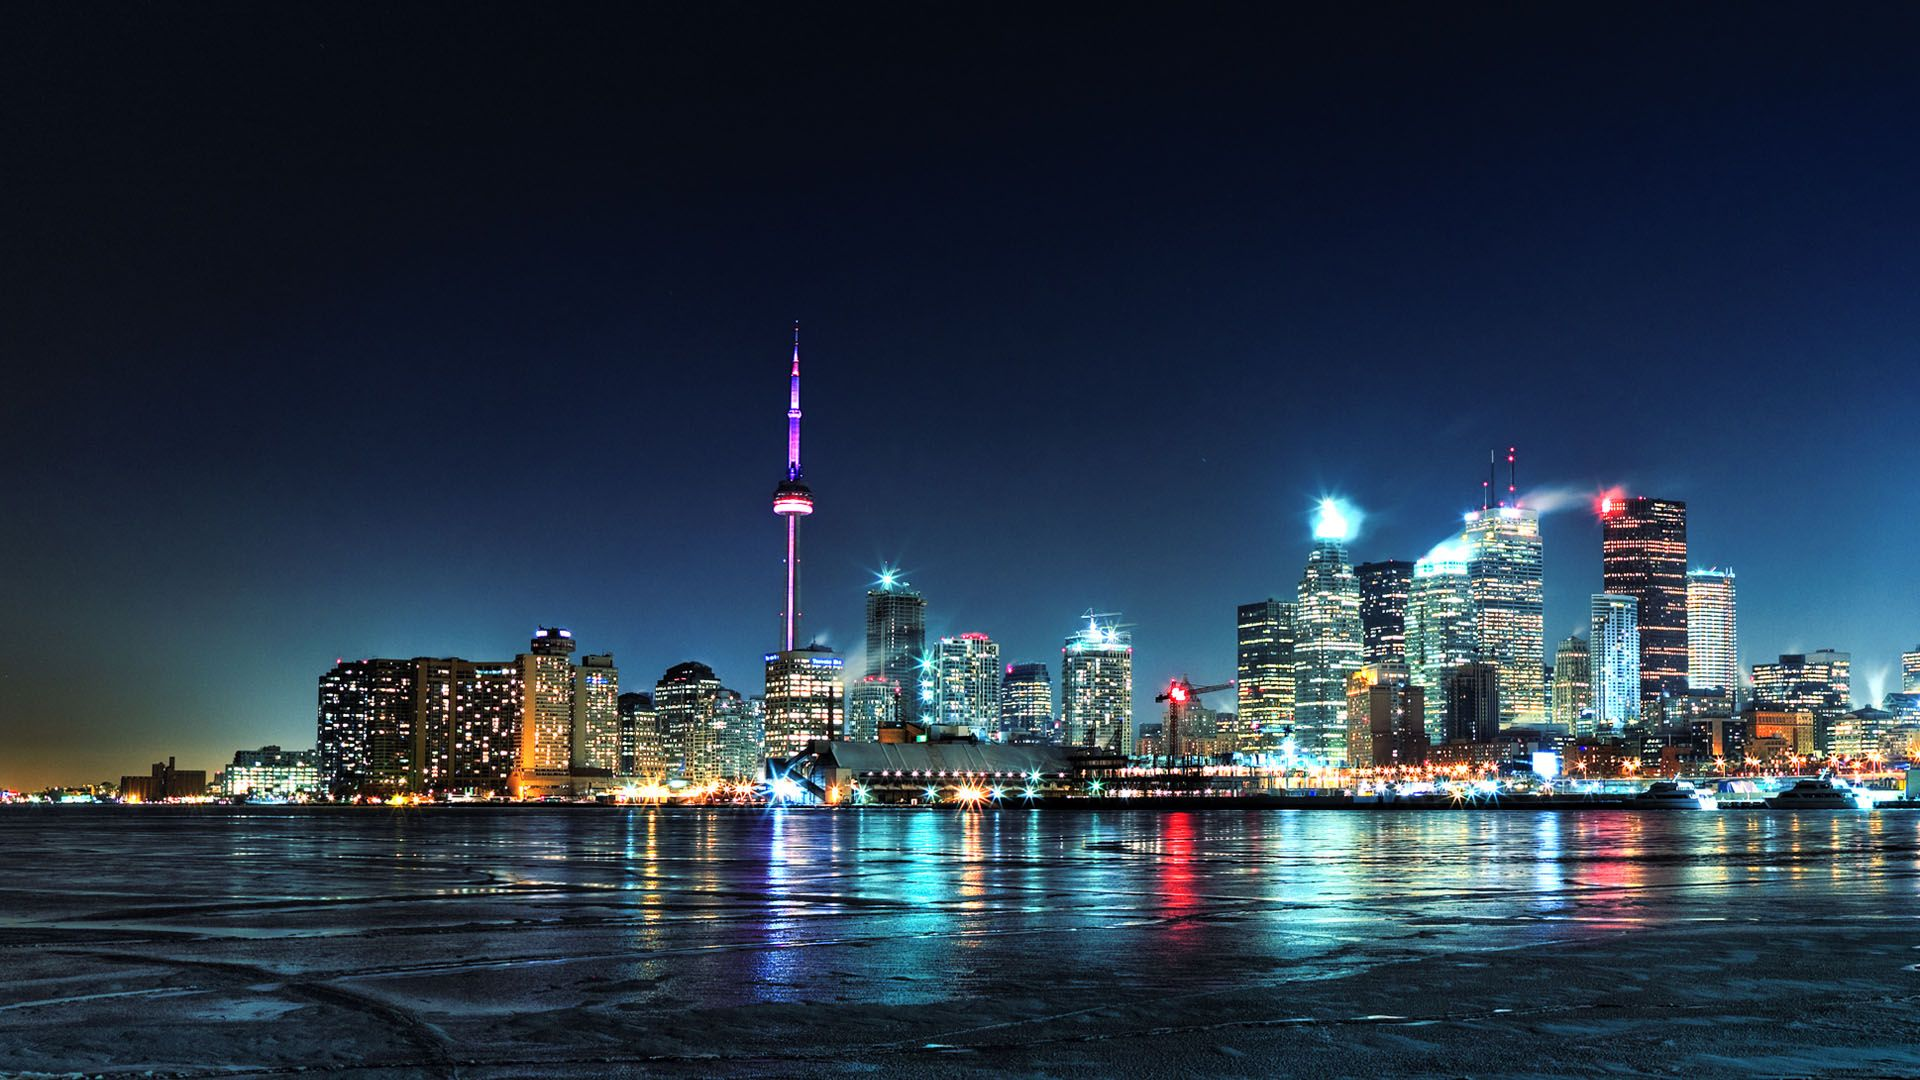 Wallpaper Tags Toronto Night City City Lights Share This Wallpaper Canada City City Lights At Night Toronto Pictures